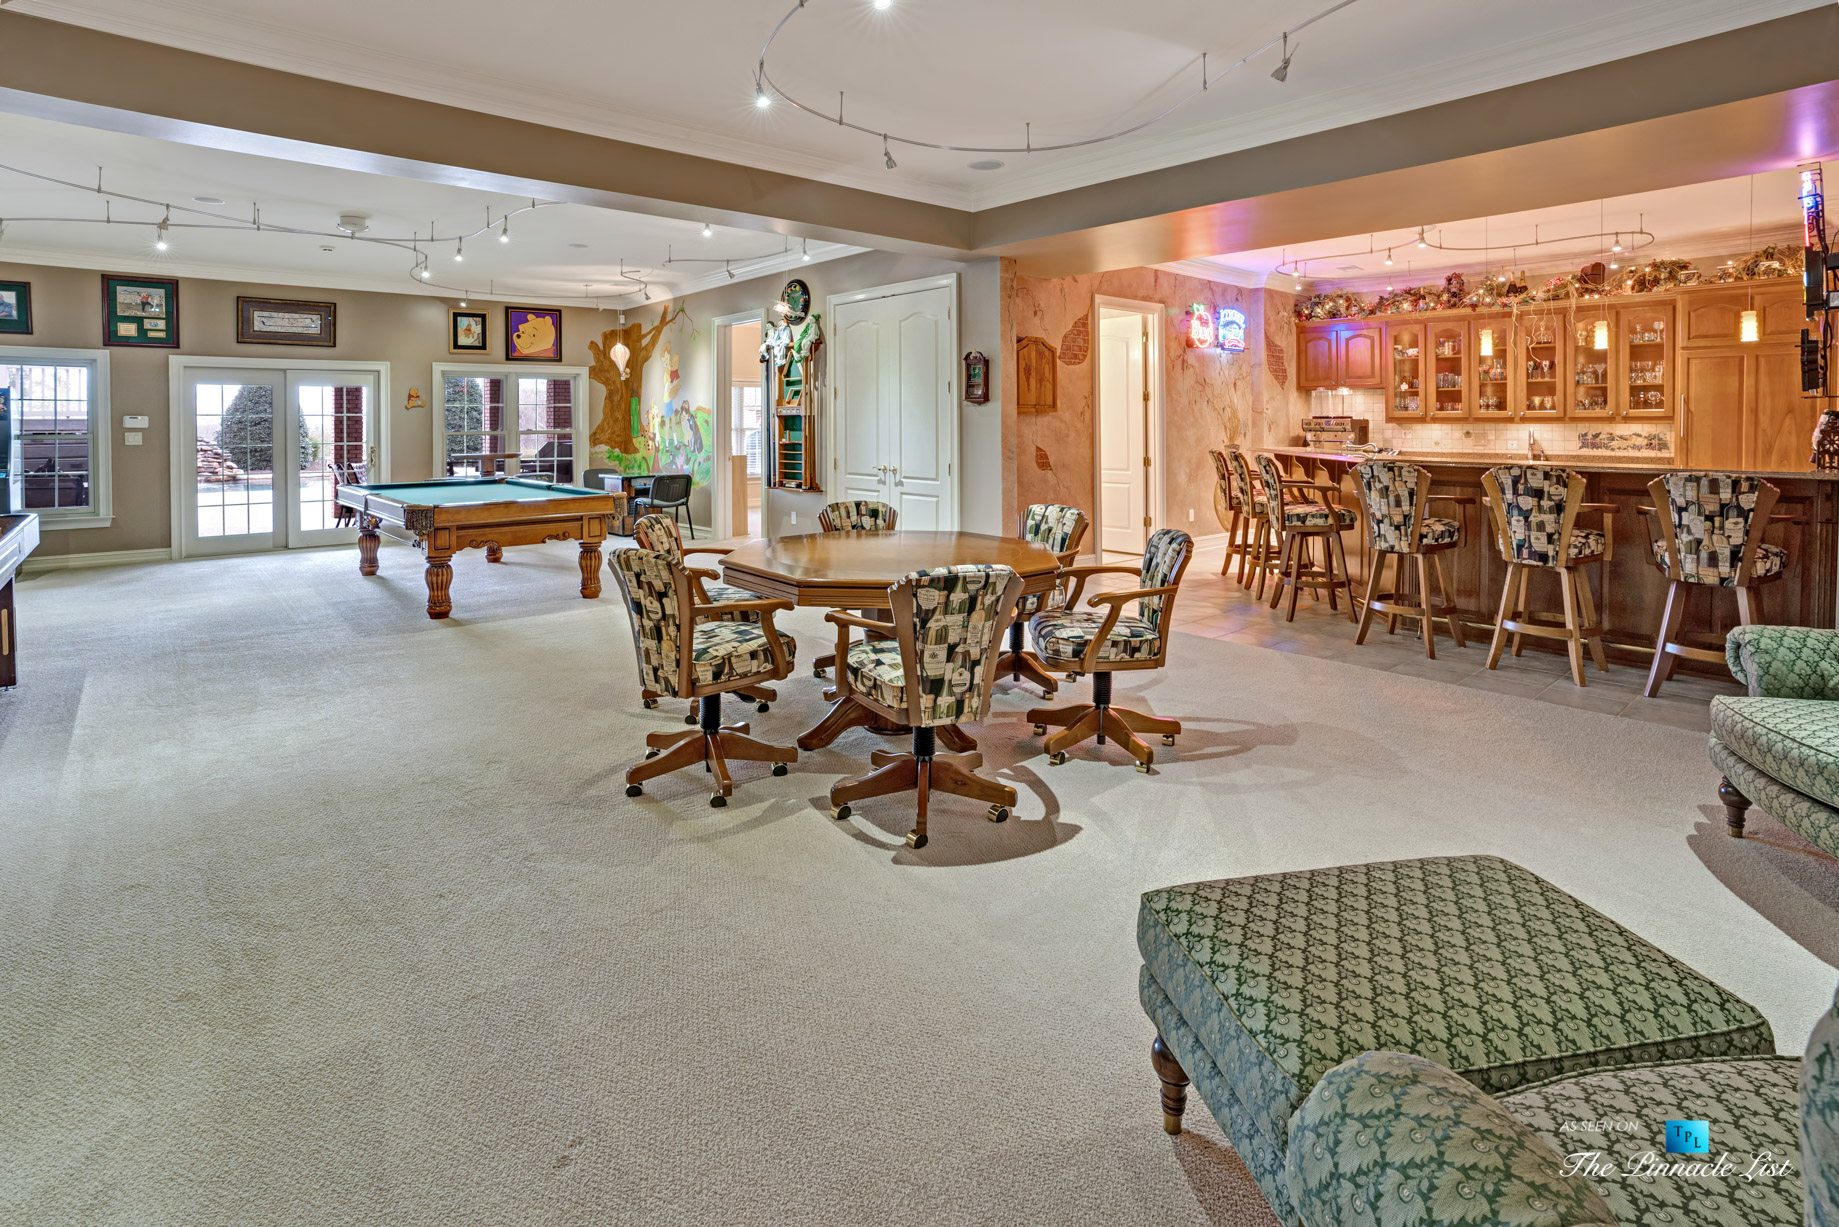 2219 Costley Mill Rd NE, Conyers, GA, USA - Entertainment Room and Bar - Luxury Real Estate - Equestrian Country Home